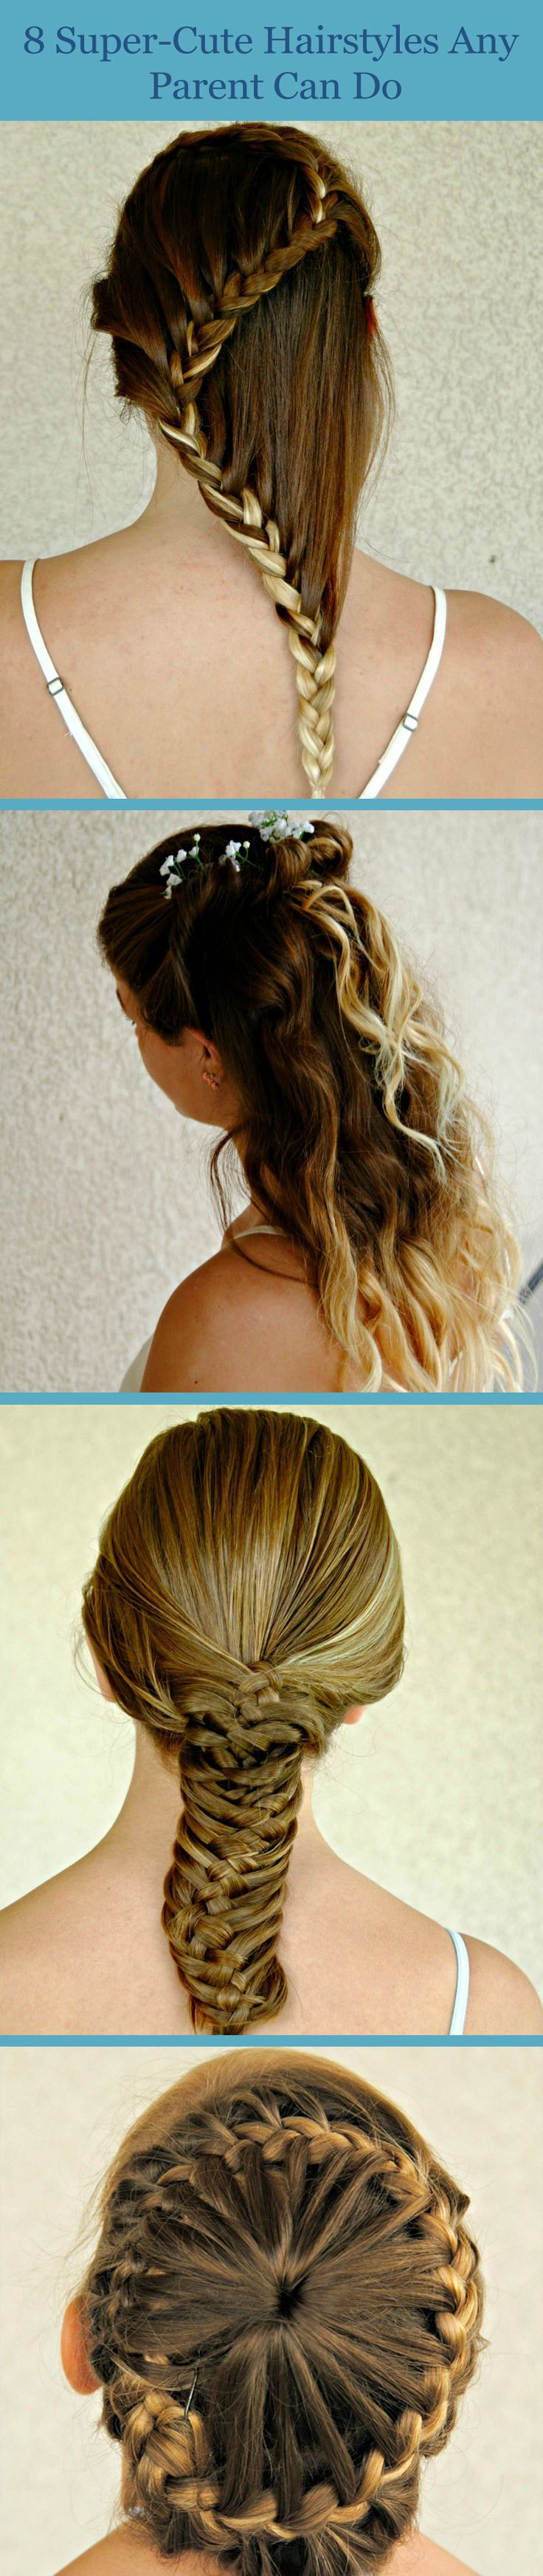 New Hairstyles Easy Kid Hairstyles And Hairstyles On